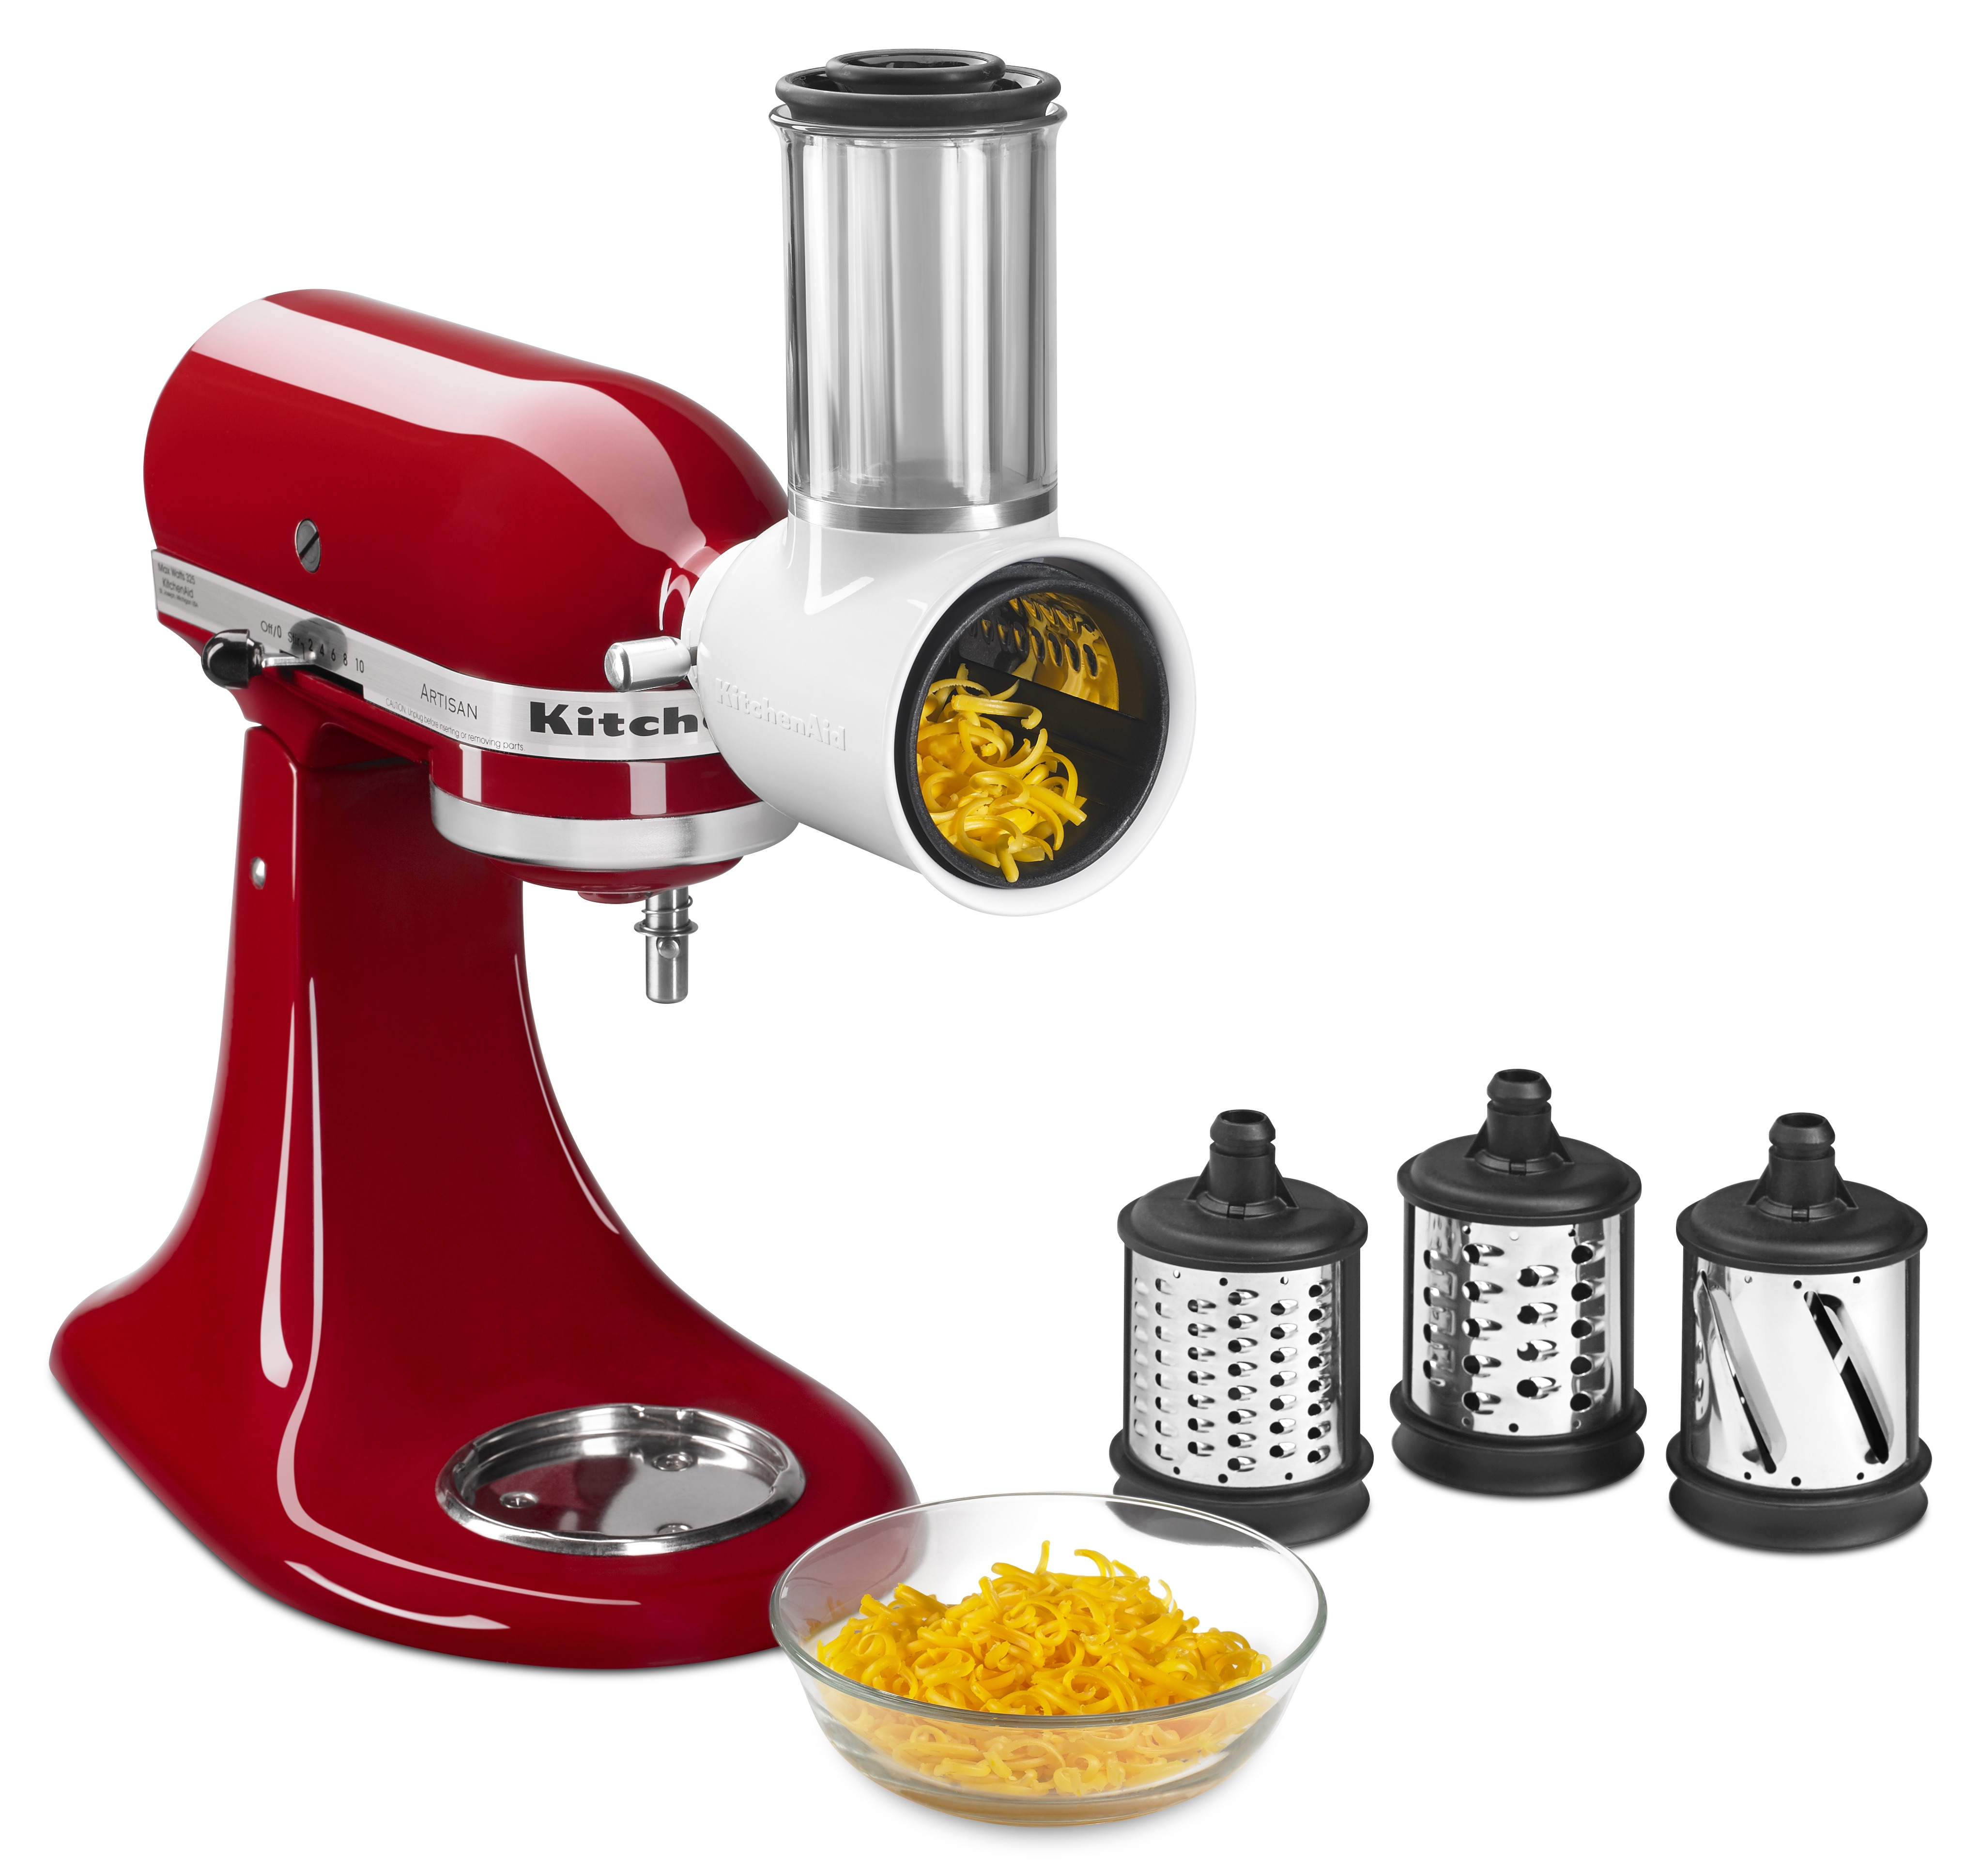 Kitchenaid Artisan Stand Mixer Attachments